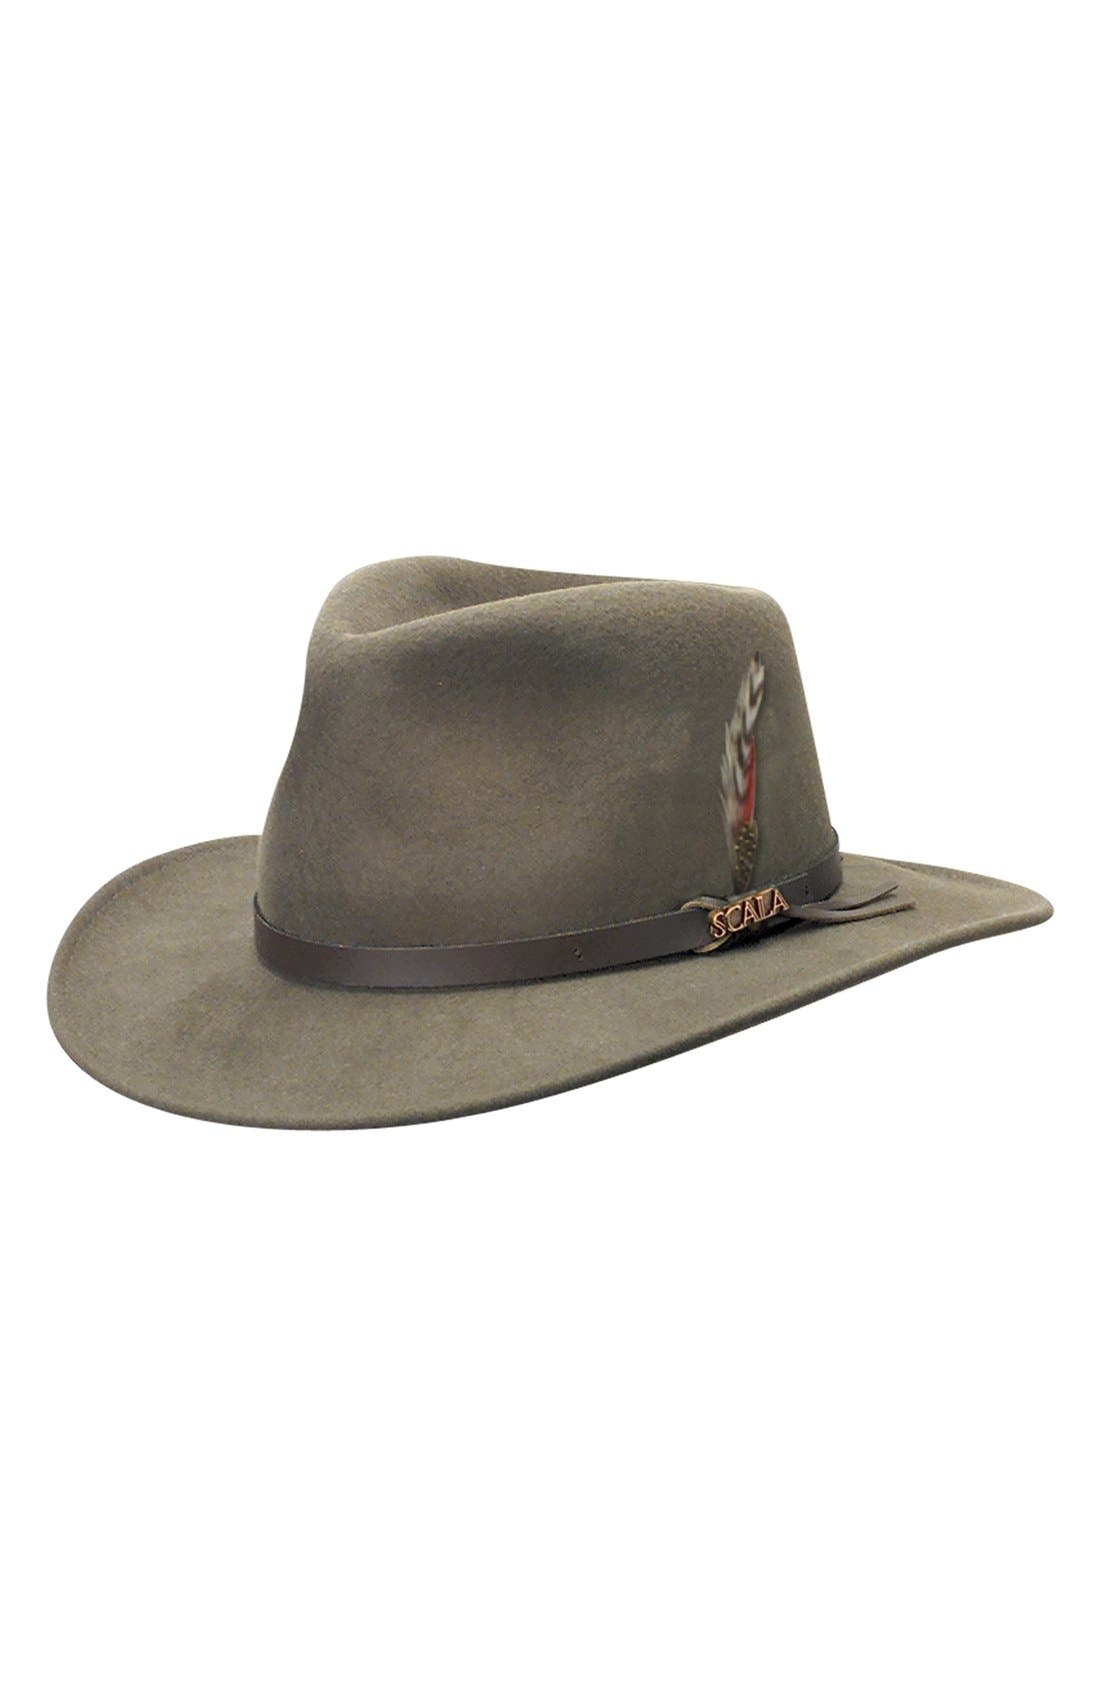 SCALA 'Classico' Crushable Felt Outback Hat, Main, color, KHAKI